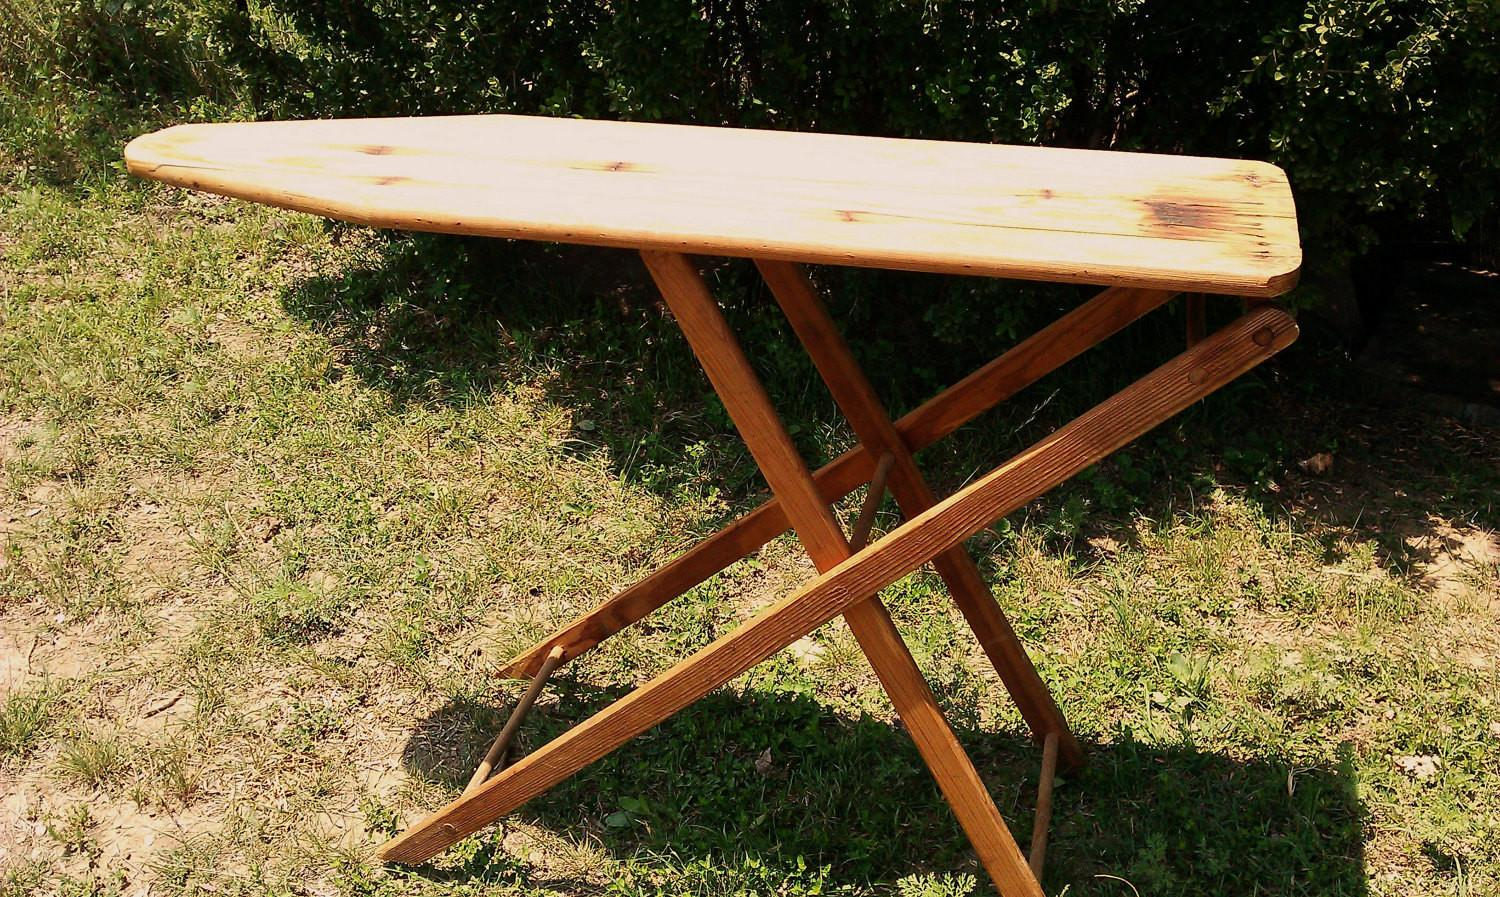 Vintage Wooden Ironing Board Antique Home Decor Mjclowdus